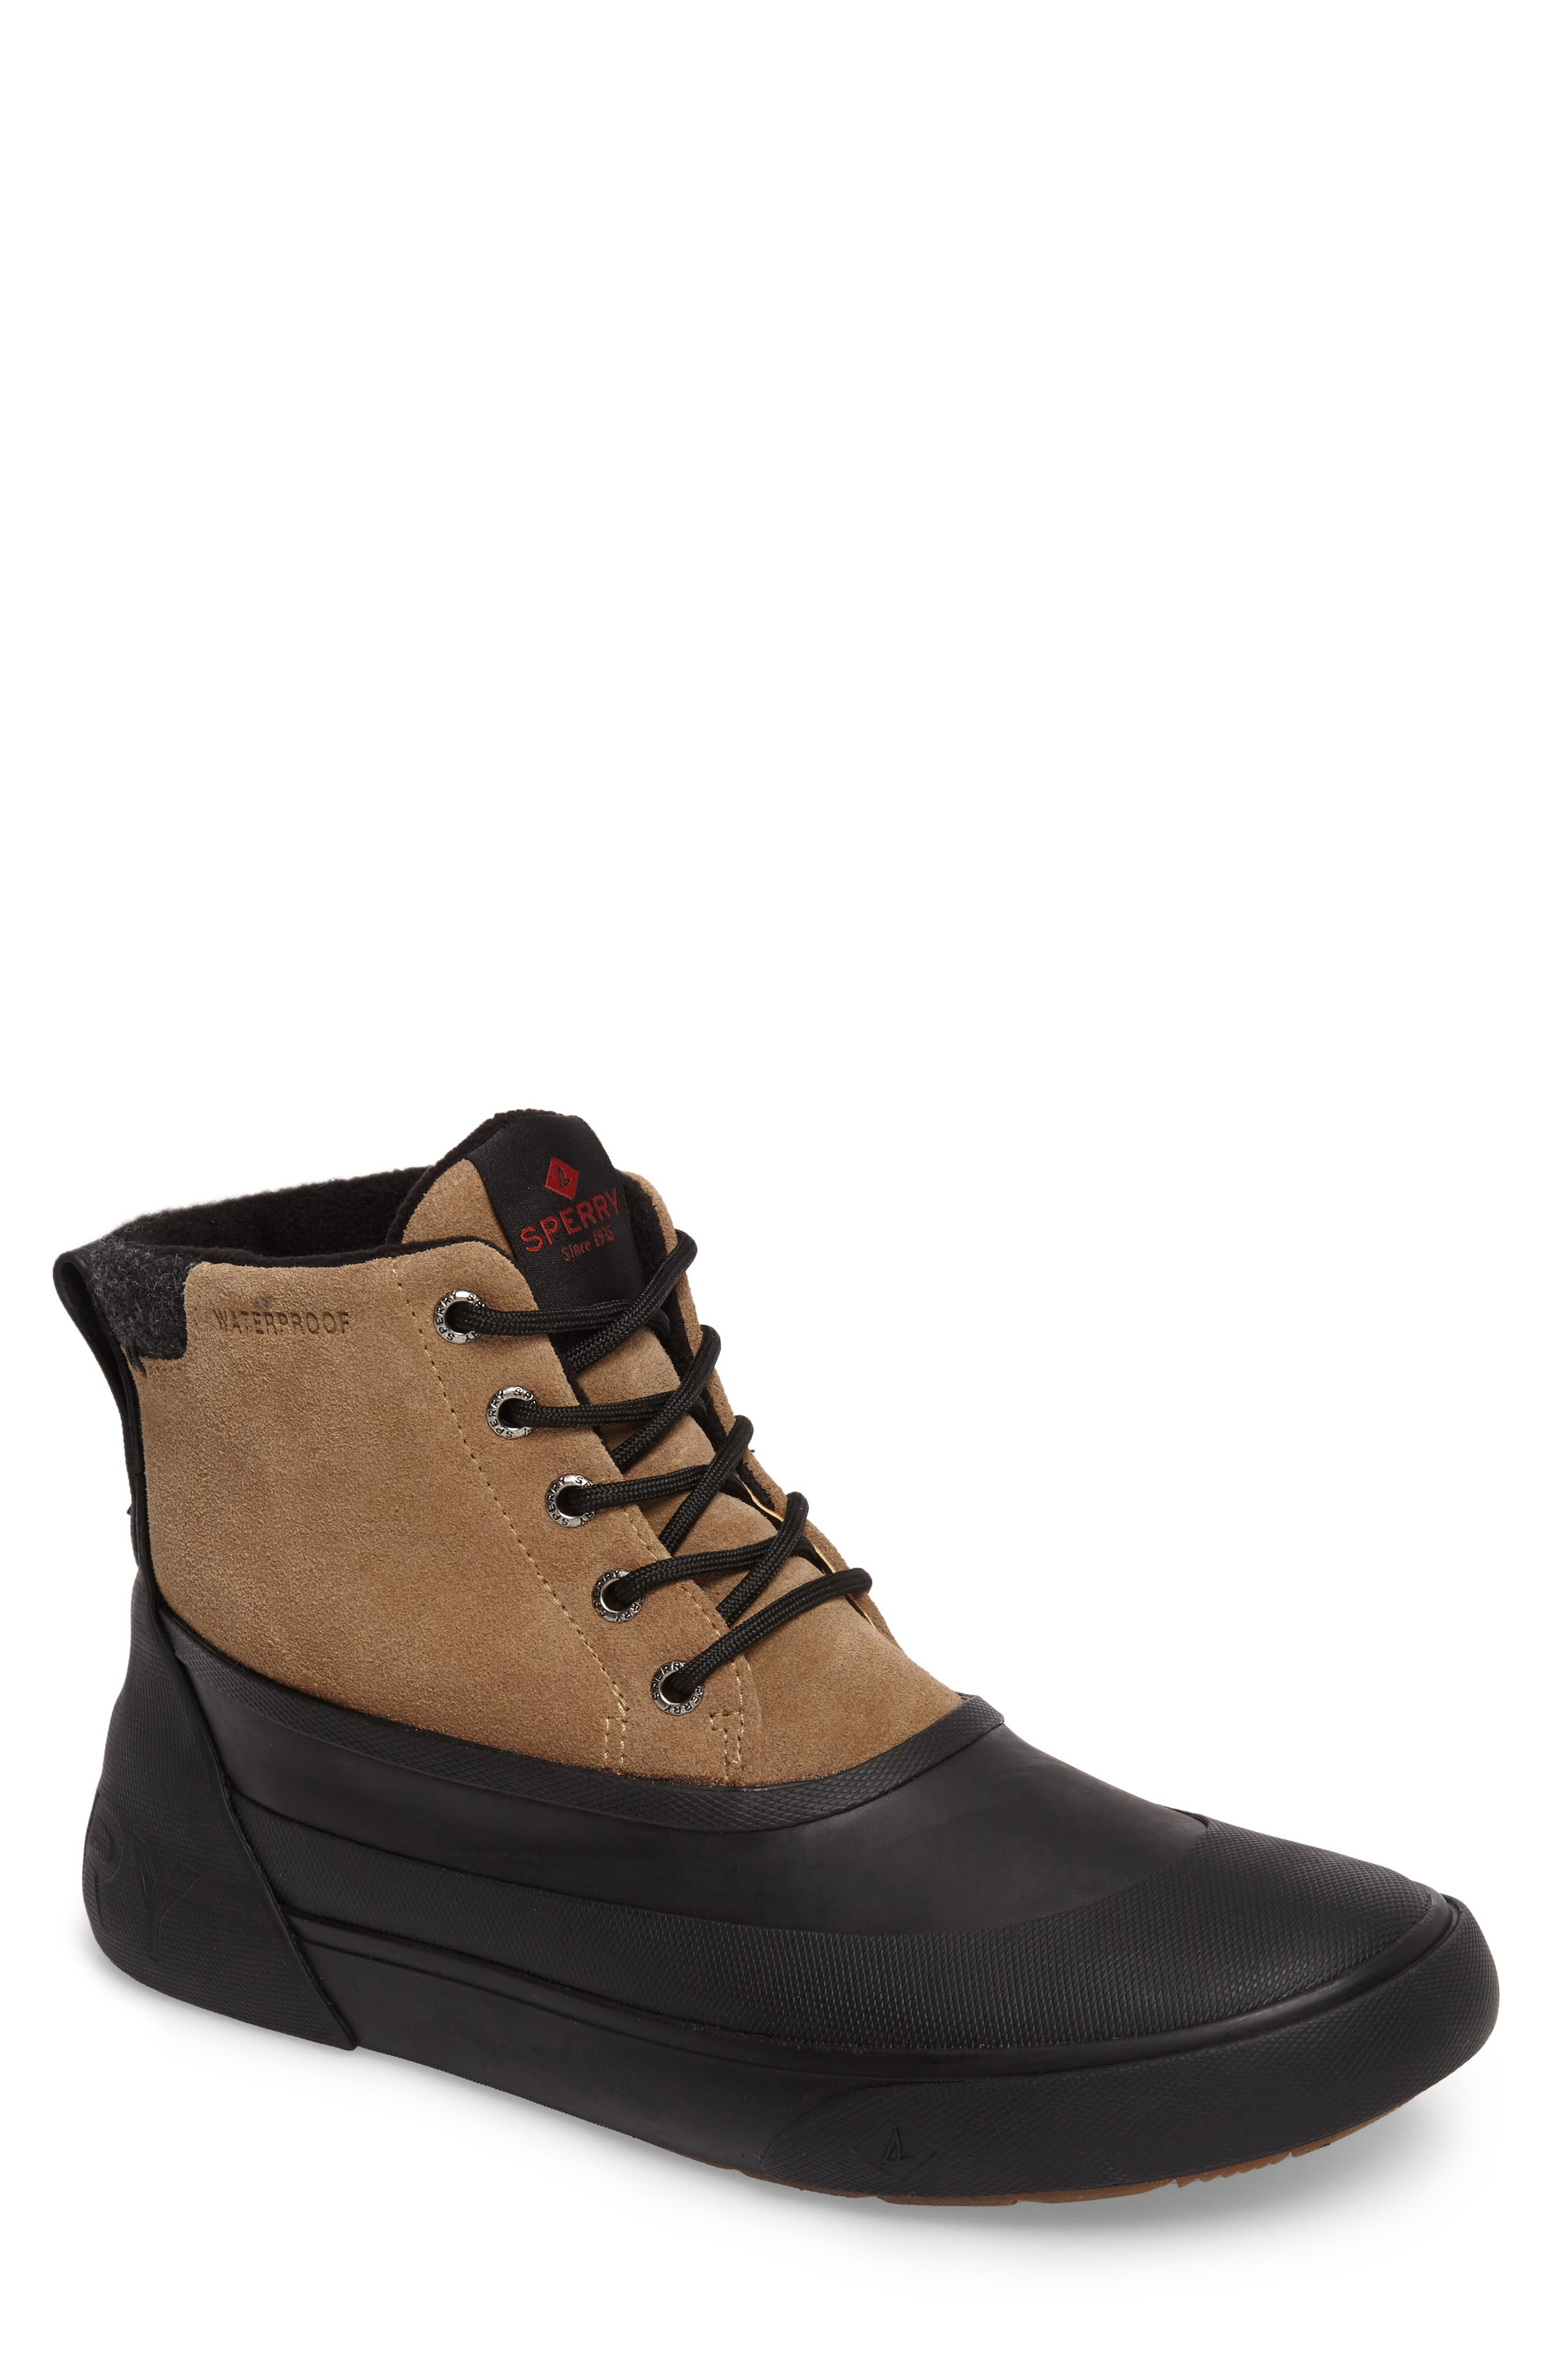 Alternate Image 1 Selected - Sperry Cutwater Boot (Men)